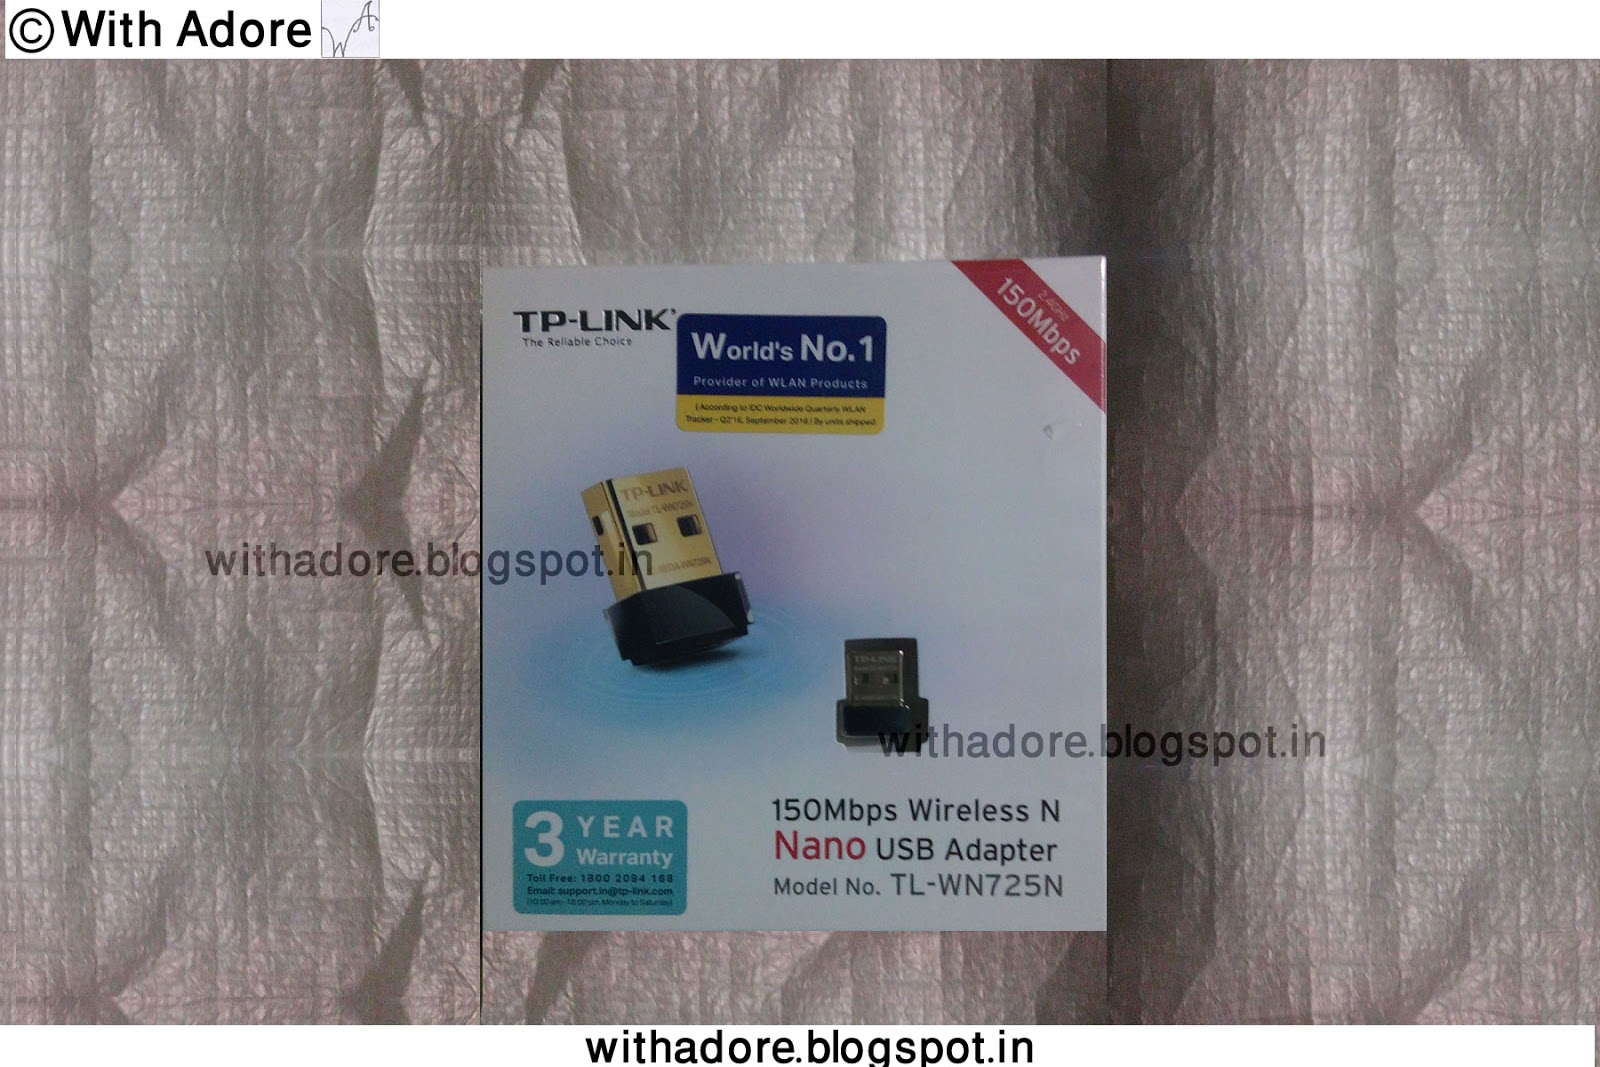 Tp Link Usb Wi Fi Adaptor Tl Wn725n Review With Adore Nano Wireless Adapter 150 Mbps Type Model Speed Warranty 3 Year Manufacturer About